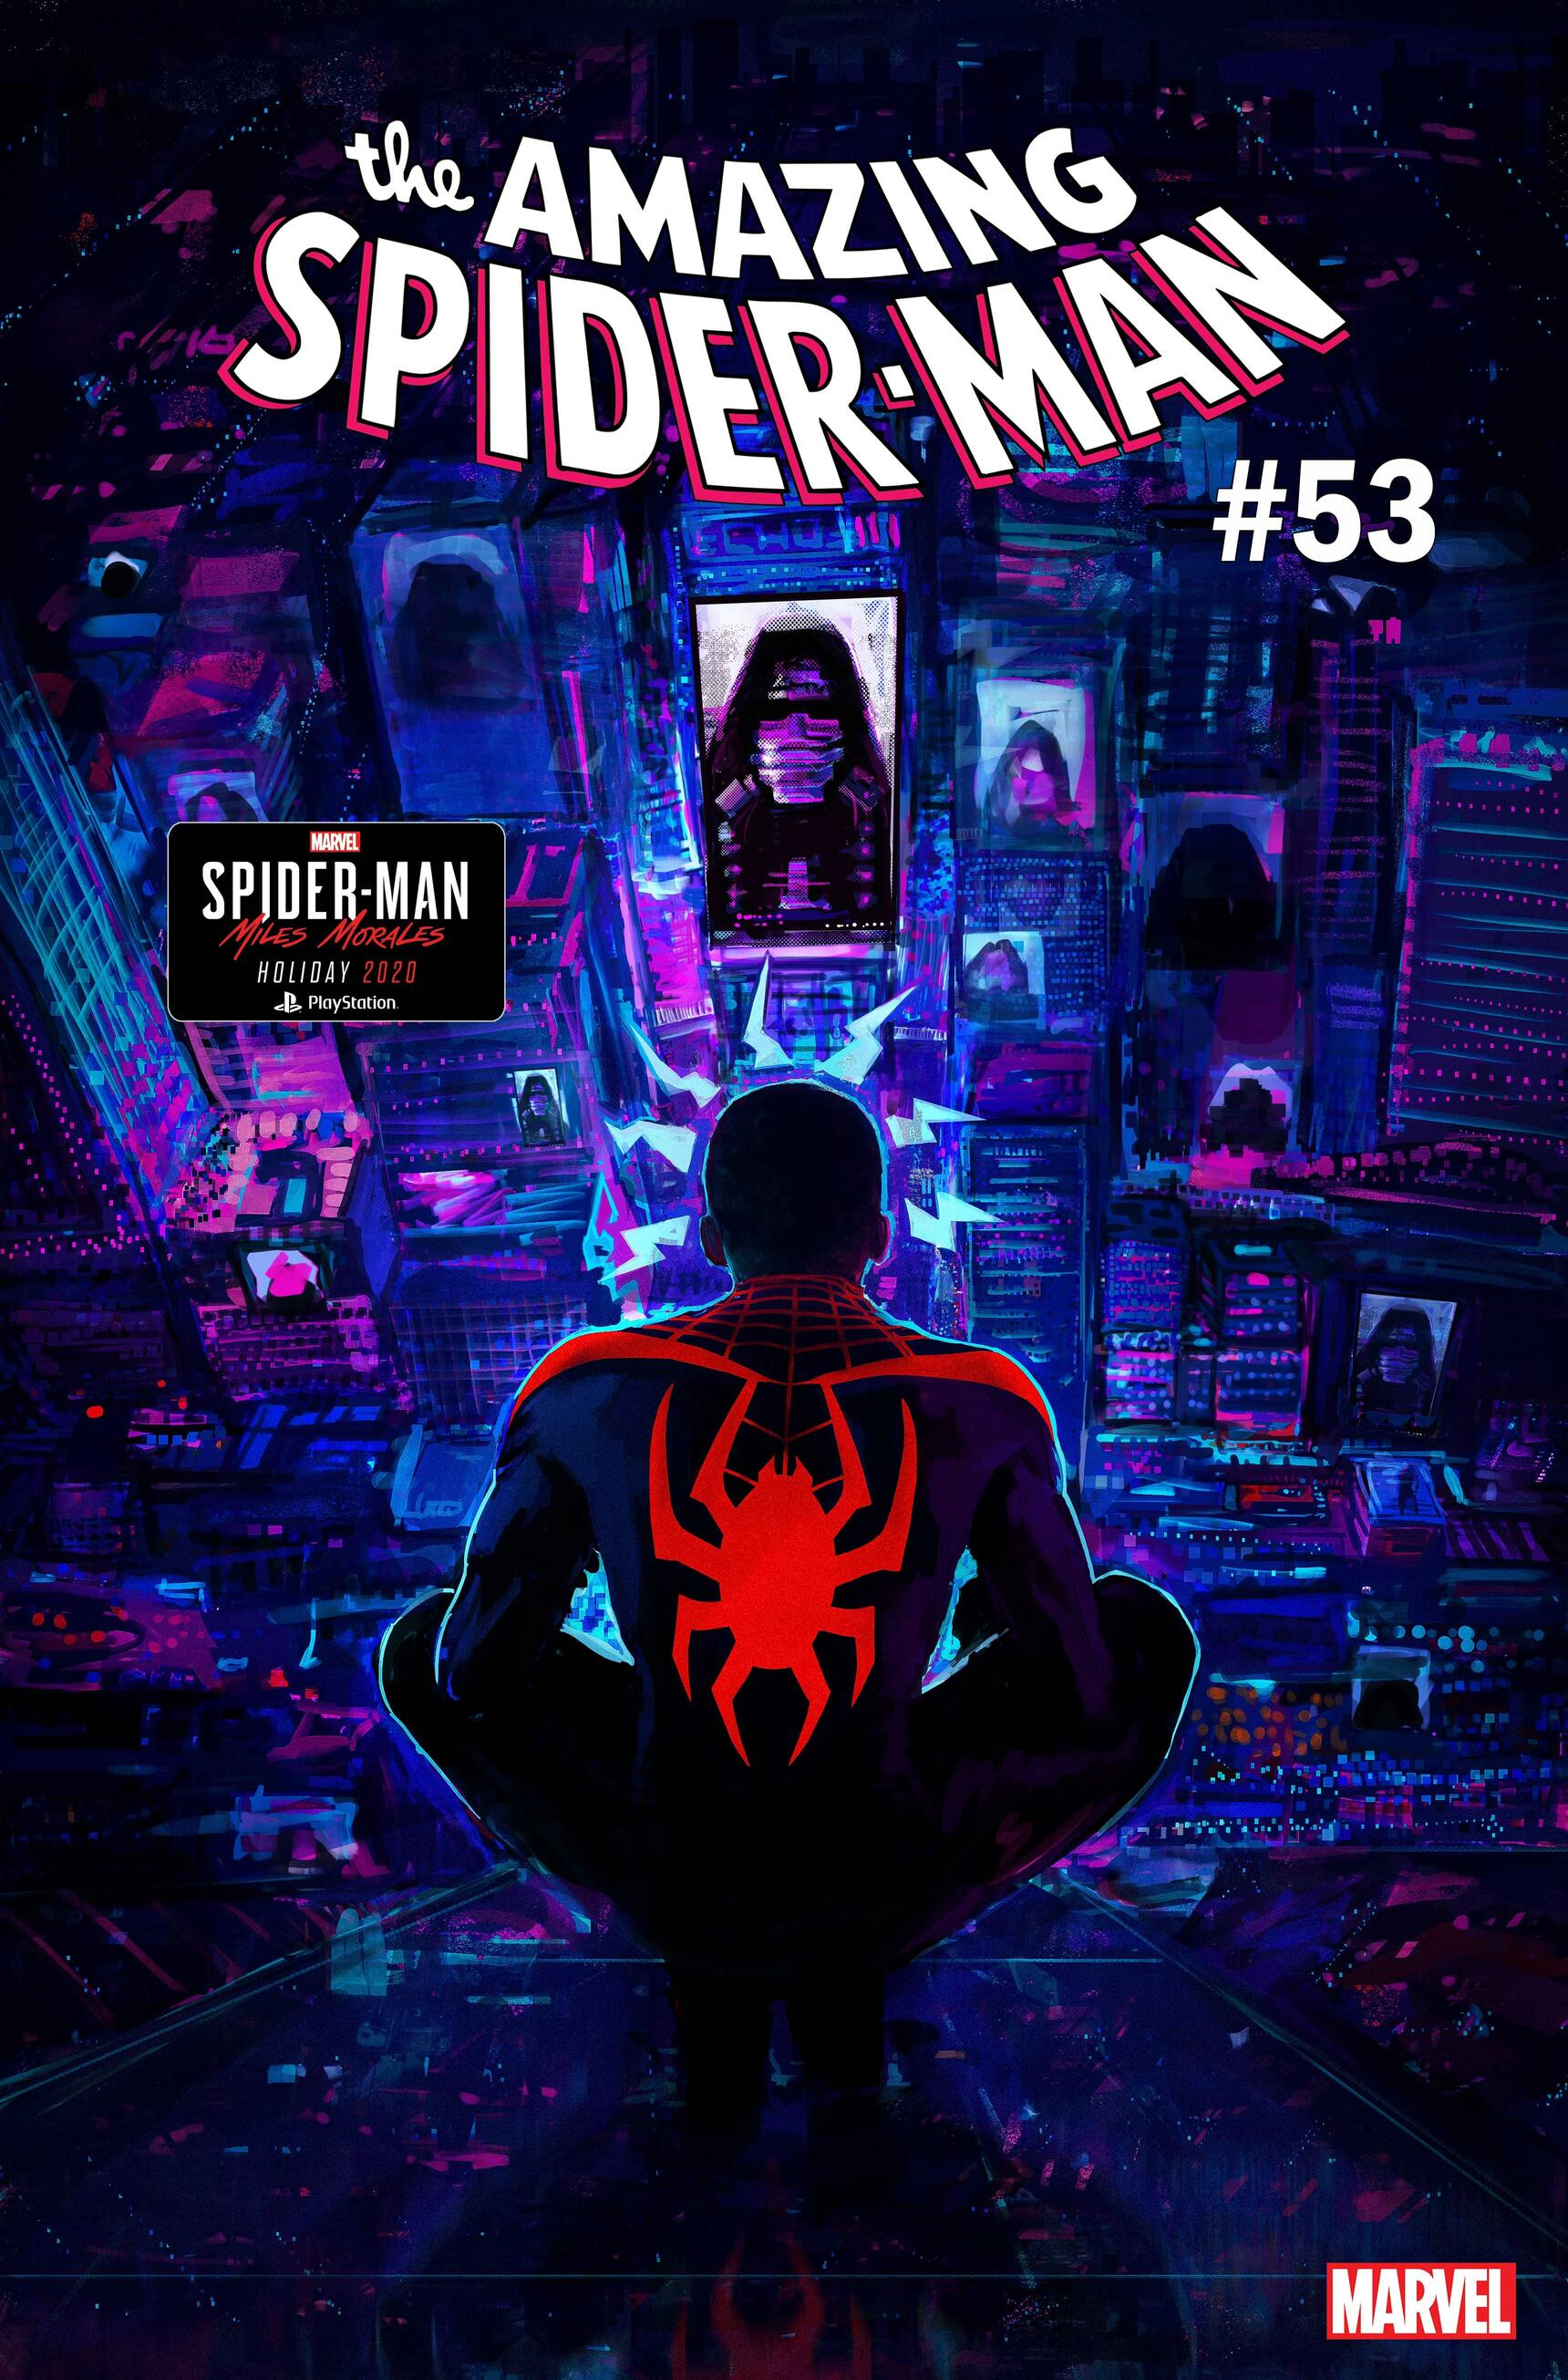 AMAZING SPIDER-MAN #53.LR cover by Insomniac Games art director Jason Hickey